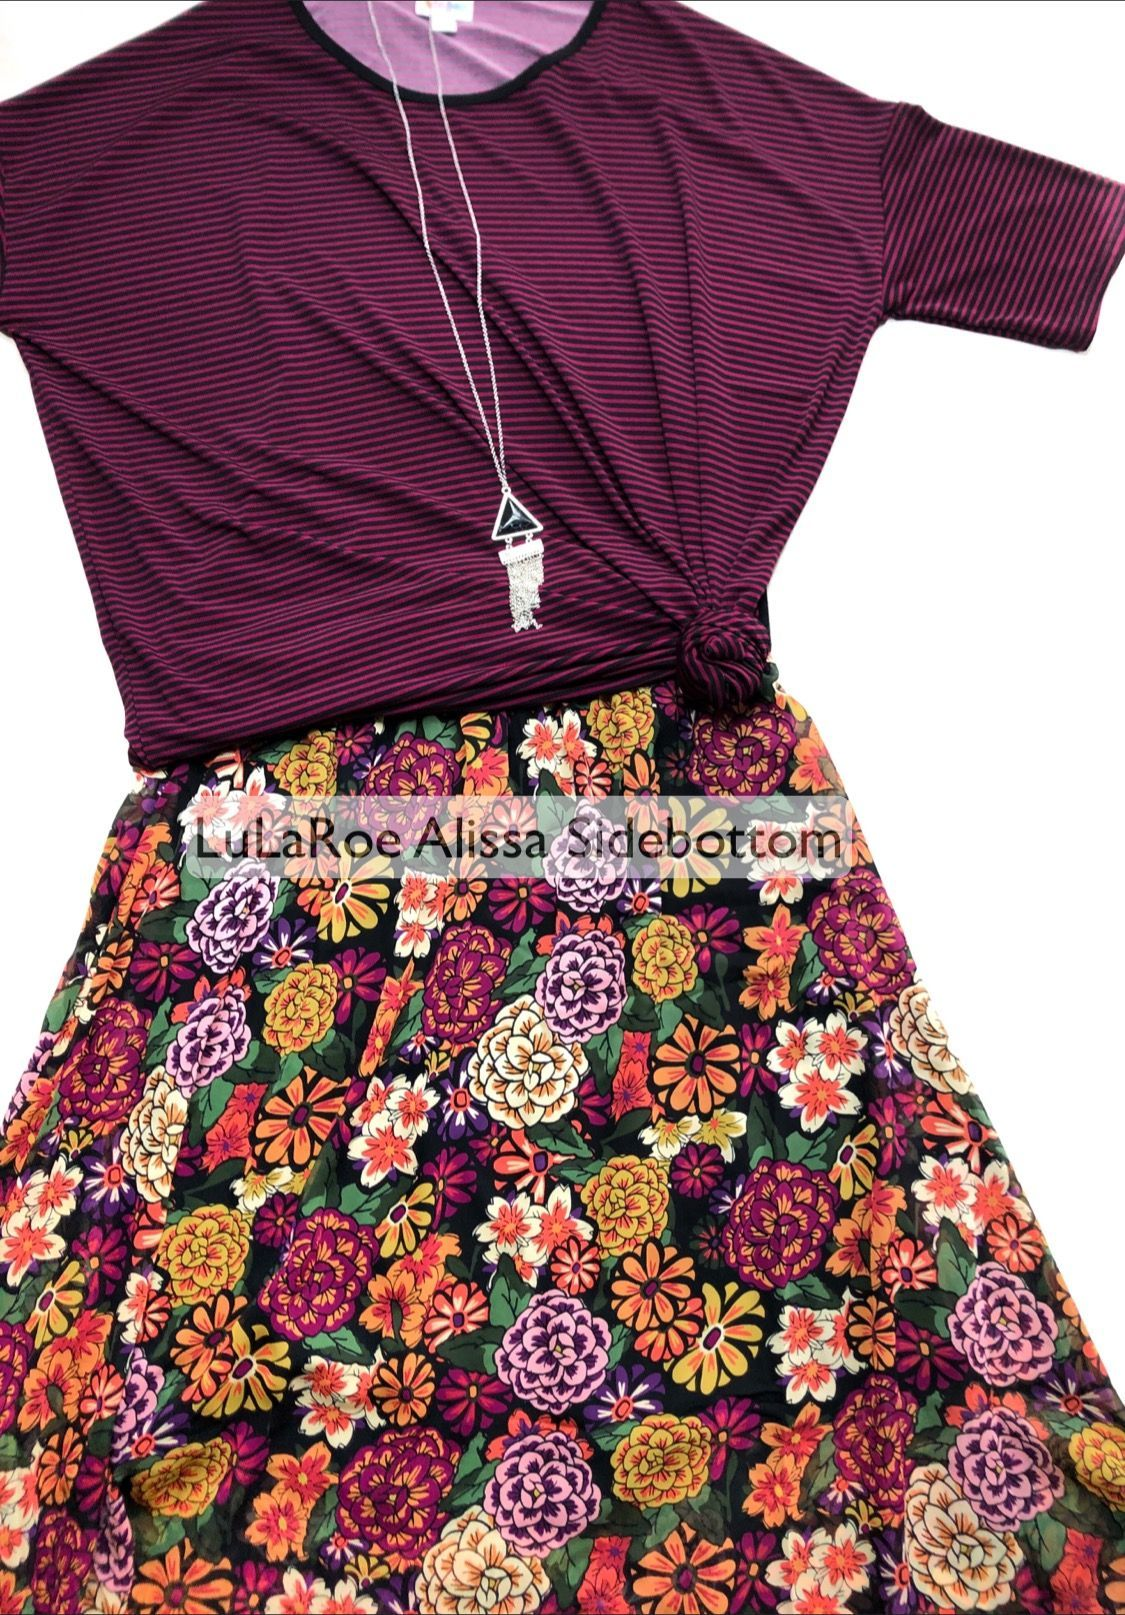 Spring Is Here And This Floral Lularoe Chiffon Lola Skirt Is